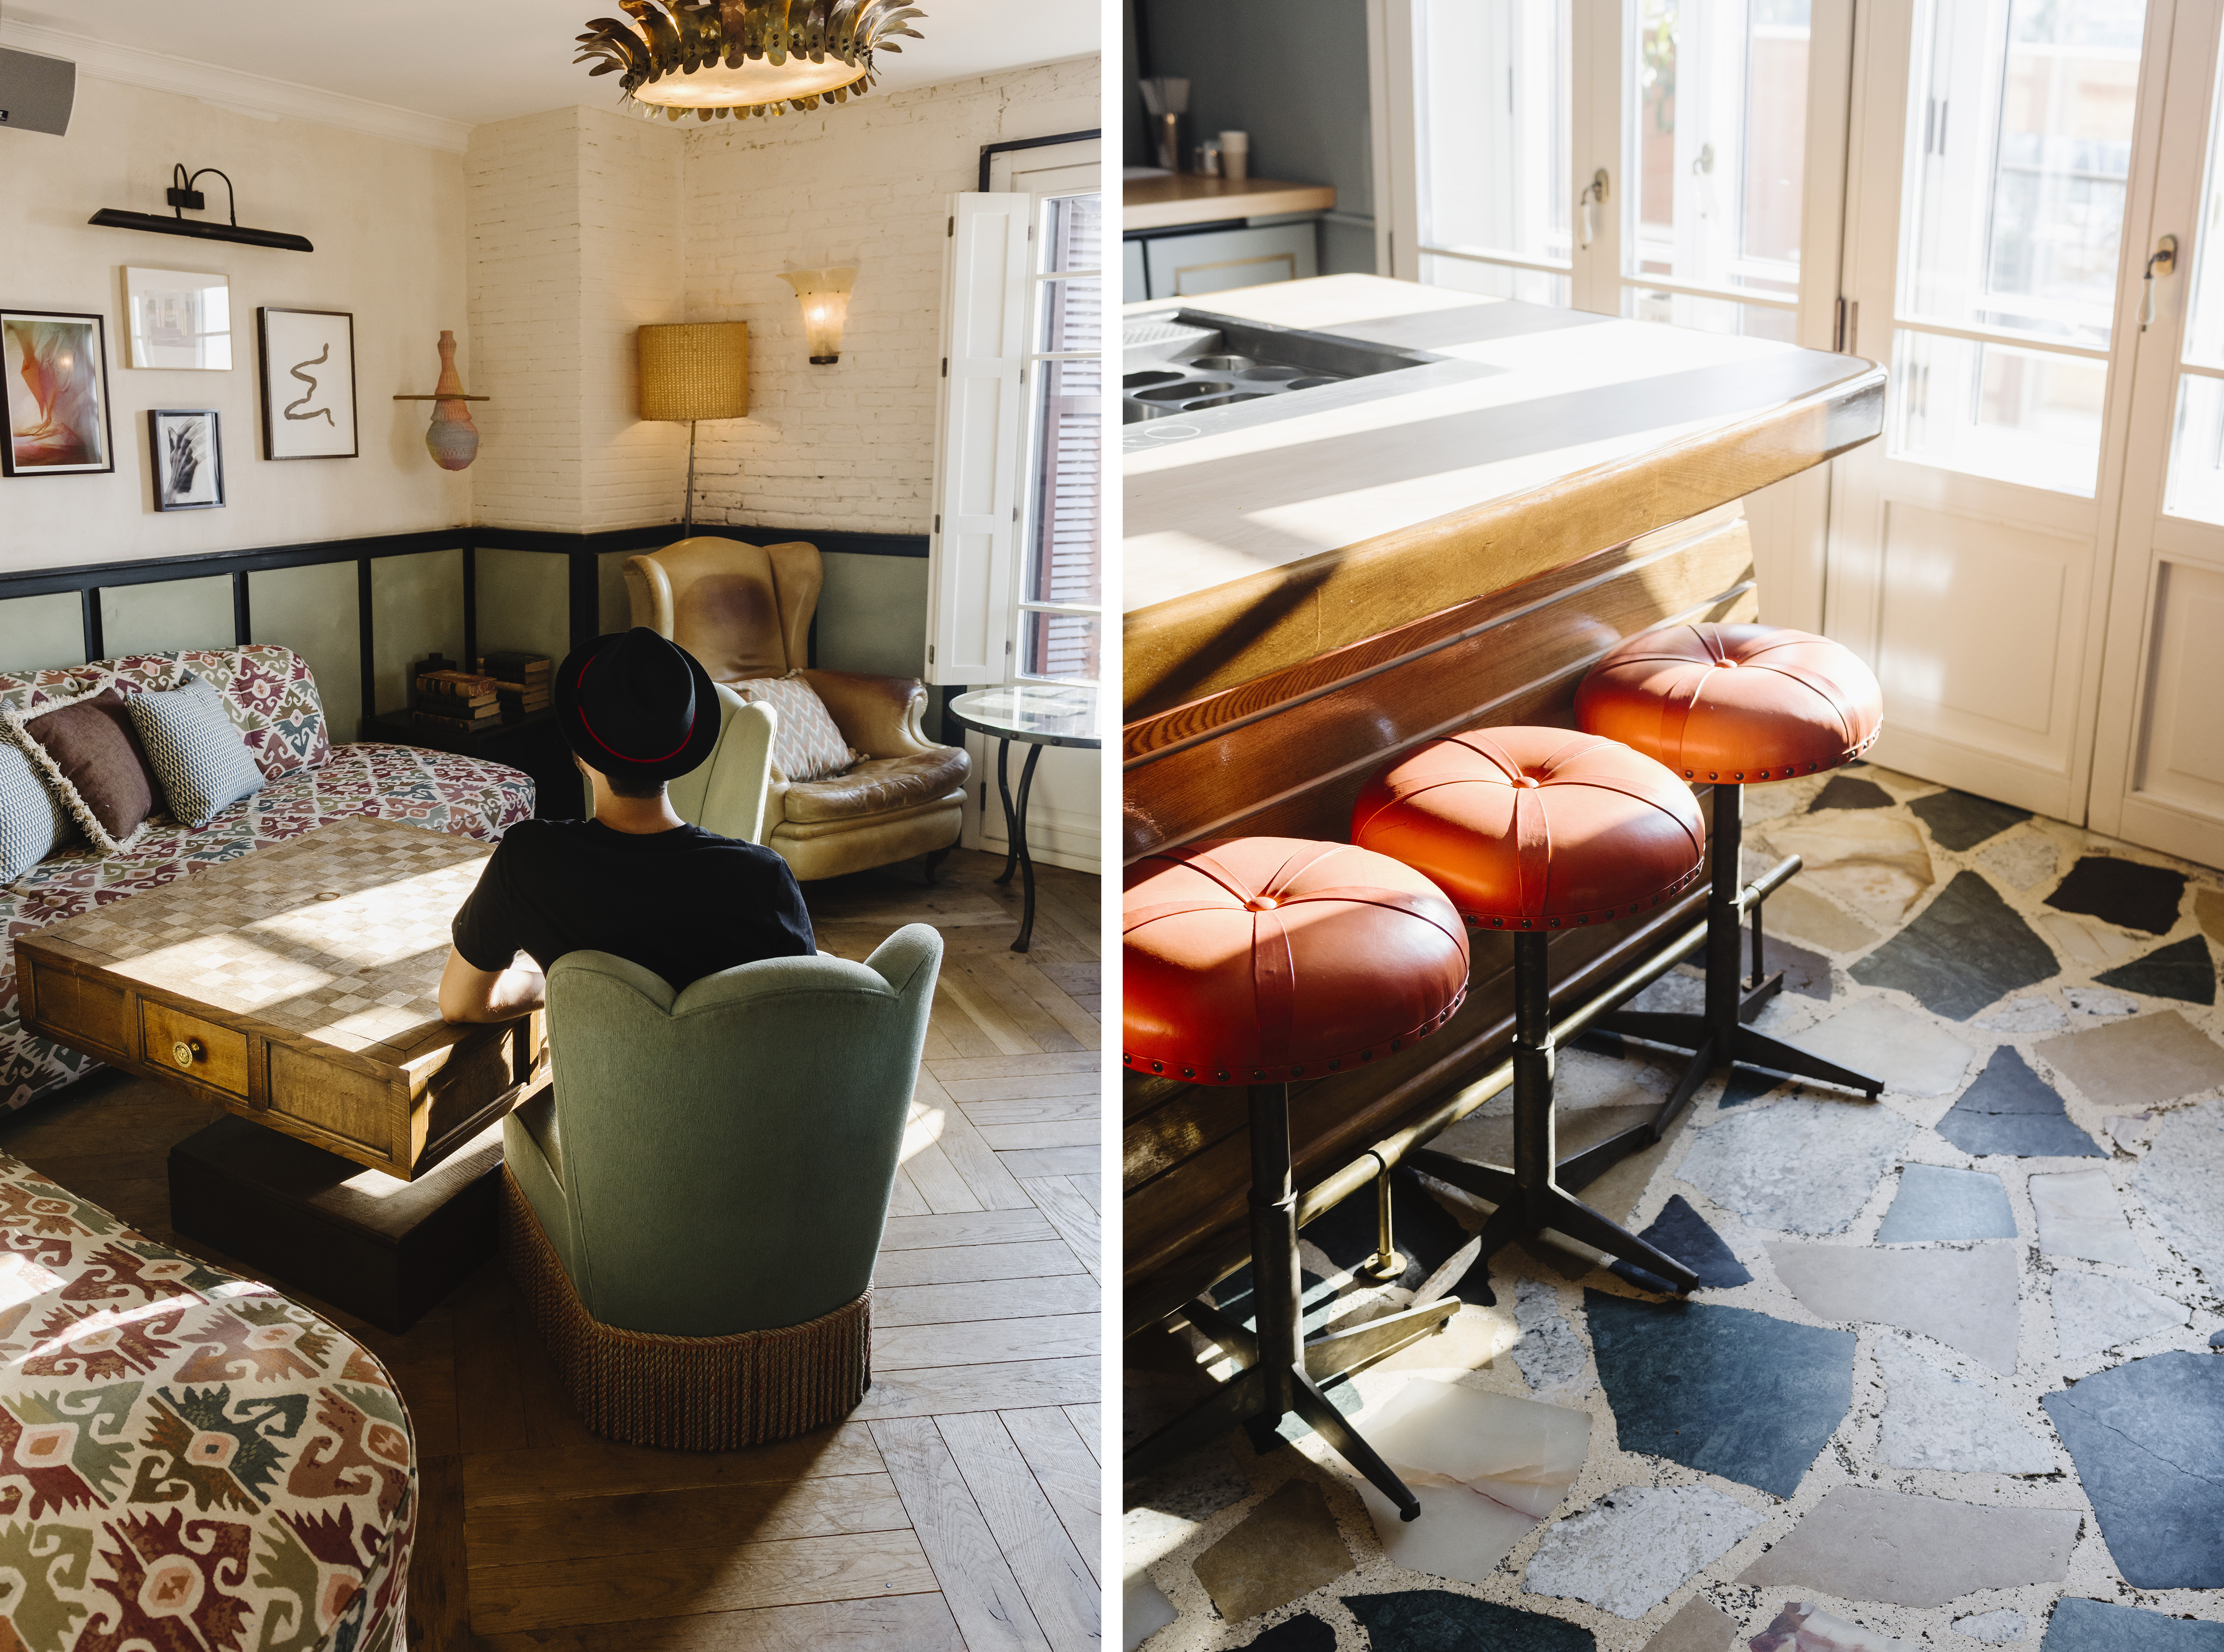 Pastel Interieur Barcelona : Must see places in barcelona for creatives pixartprinting